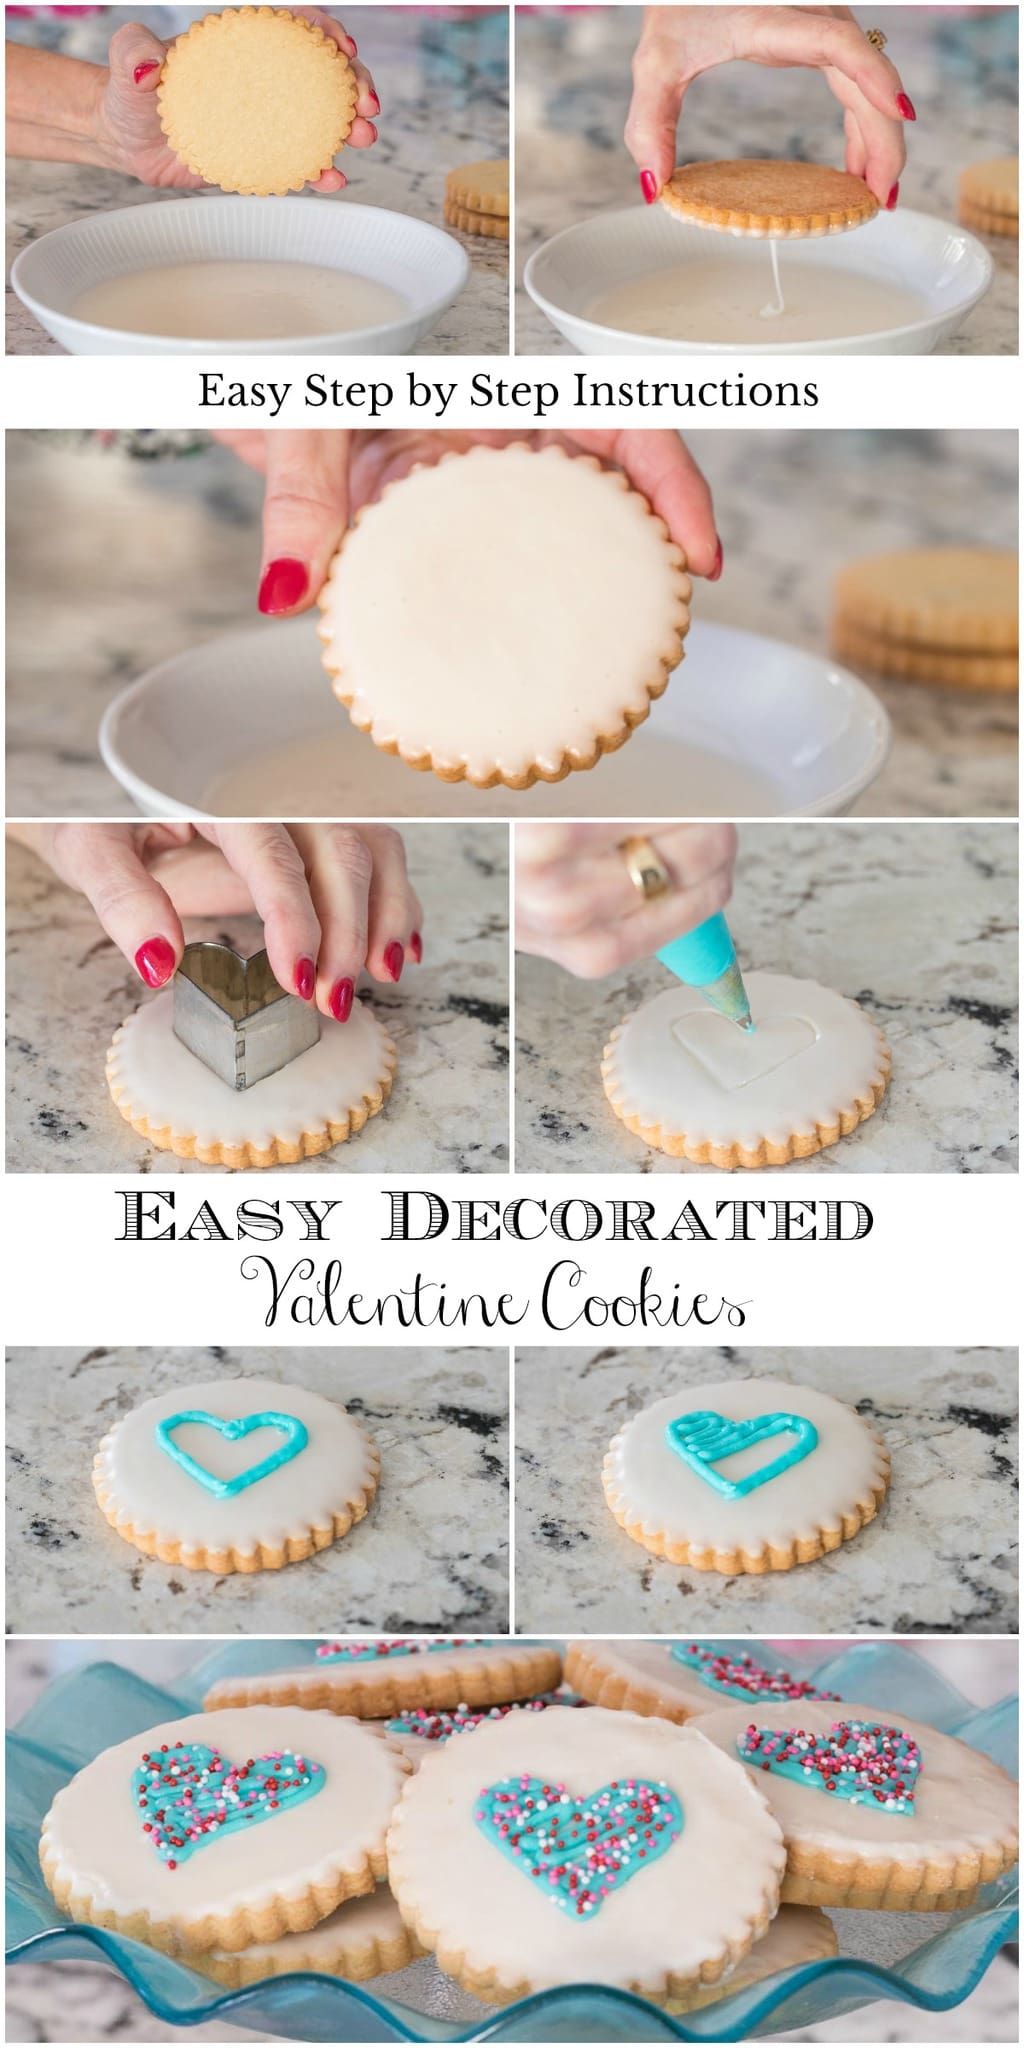 These cookies are not only delicious and look like they come from a fine bake-shop, but the dough recipe is one-bowl and no-mixer! #easyvalentinecookies, #easydecoratedcookies, #heartcookies, #easyshortbread, #howtodecoratecookies